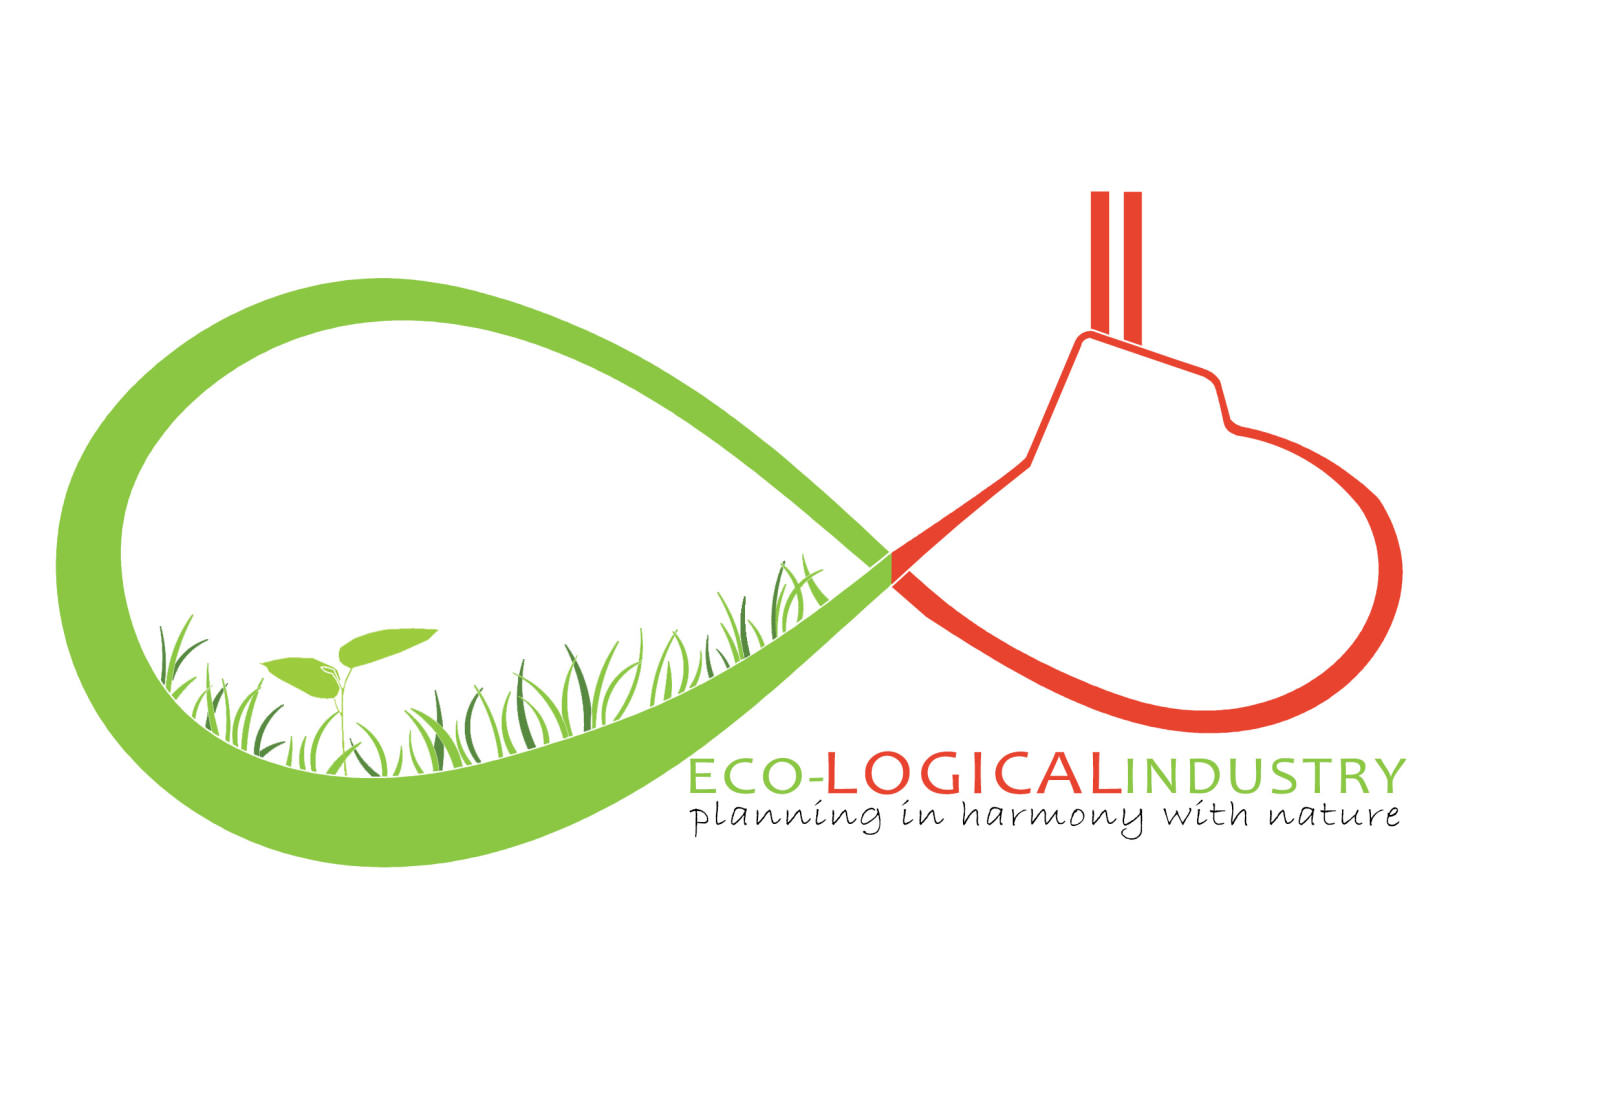 Eco-Logical Industry